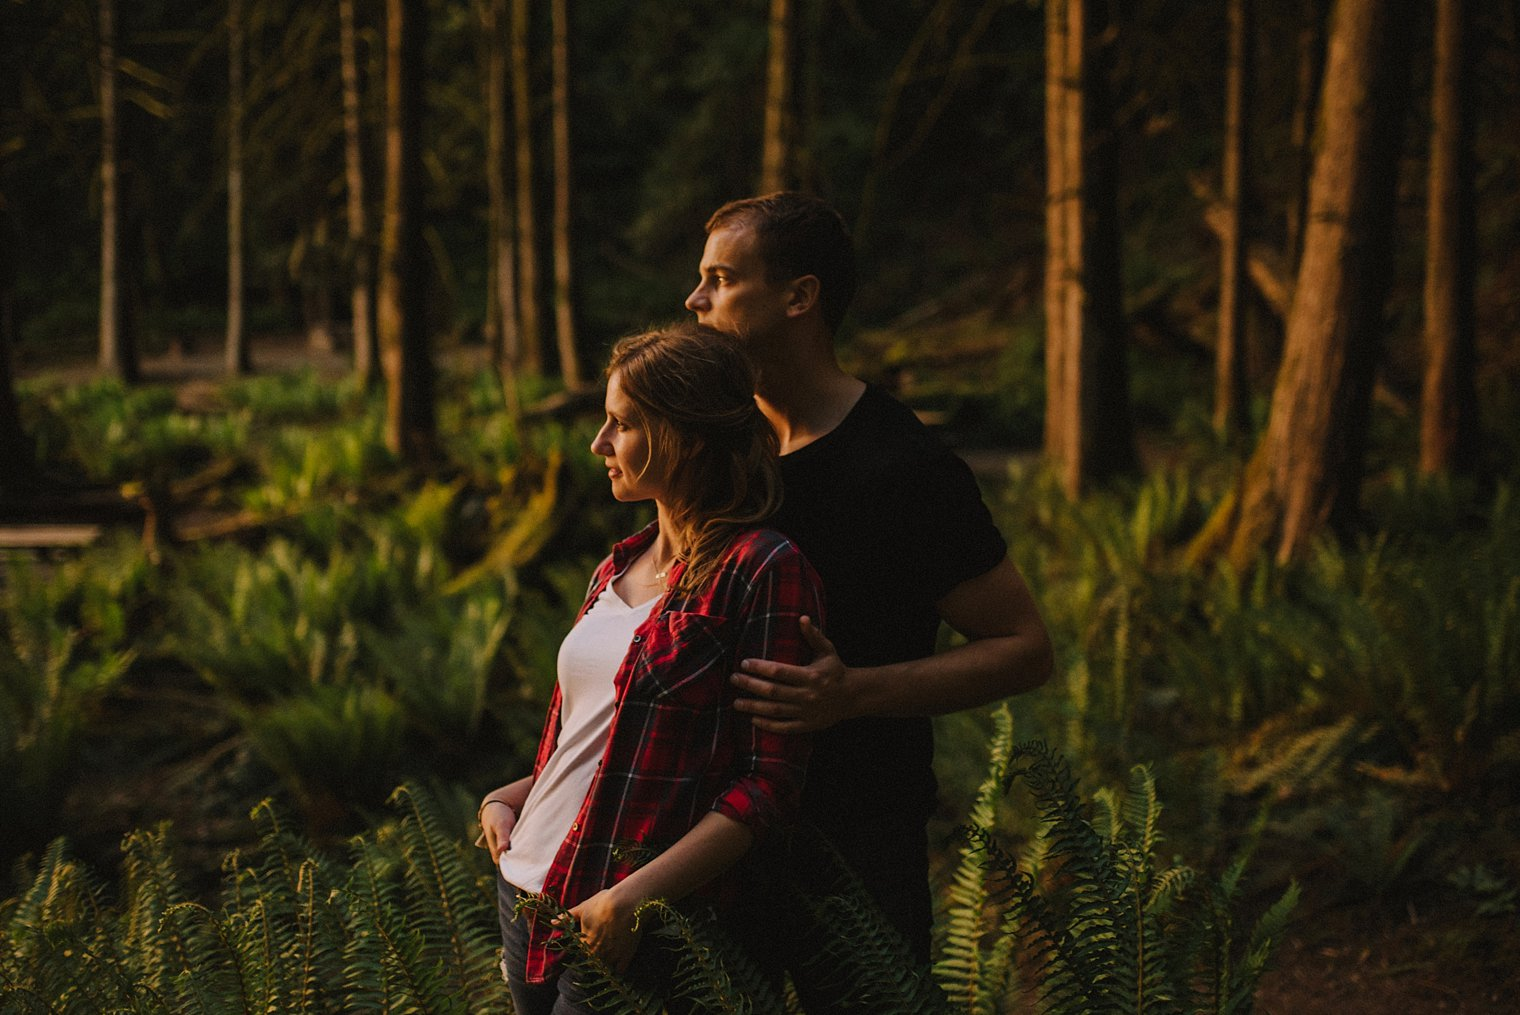 sunset portraits in forest near harrison lake